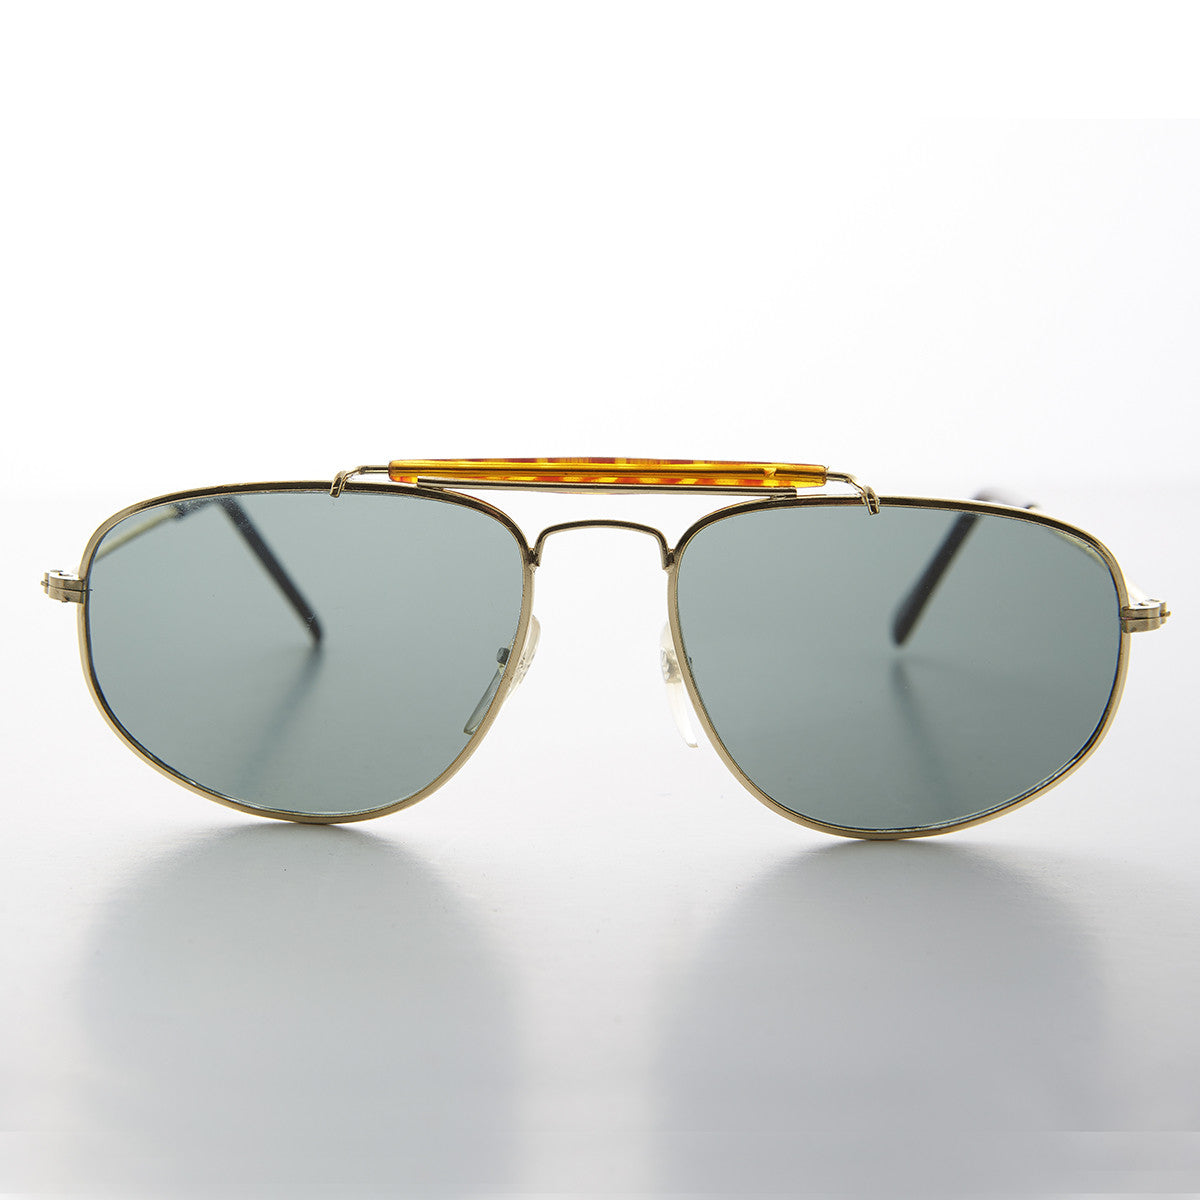 Gold square vintage aviator with brow bar and glass lens